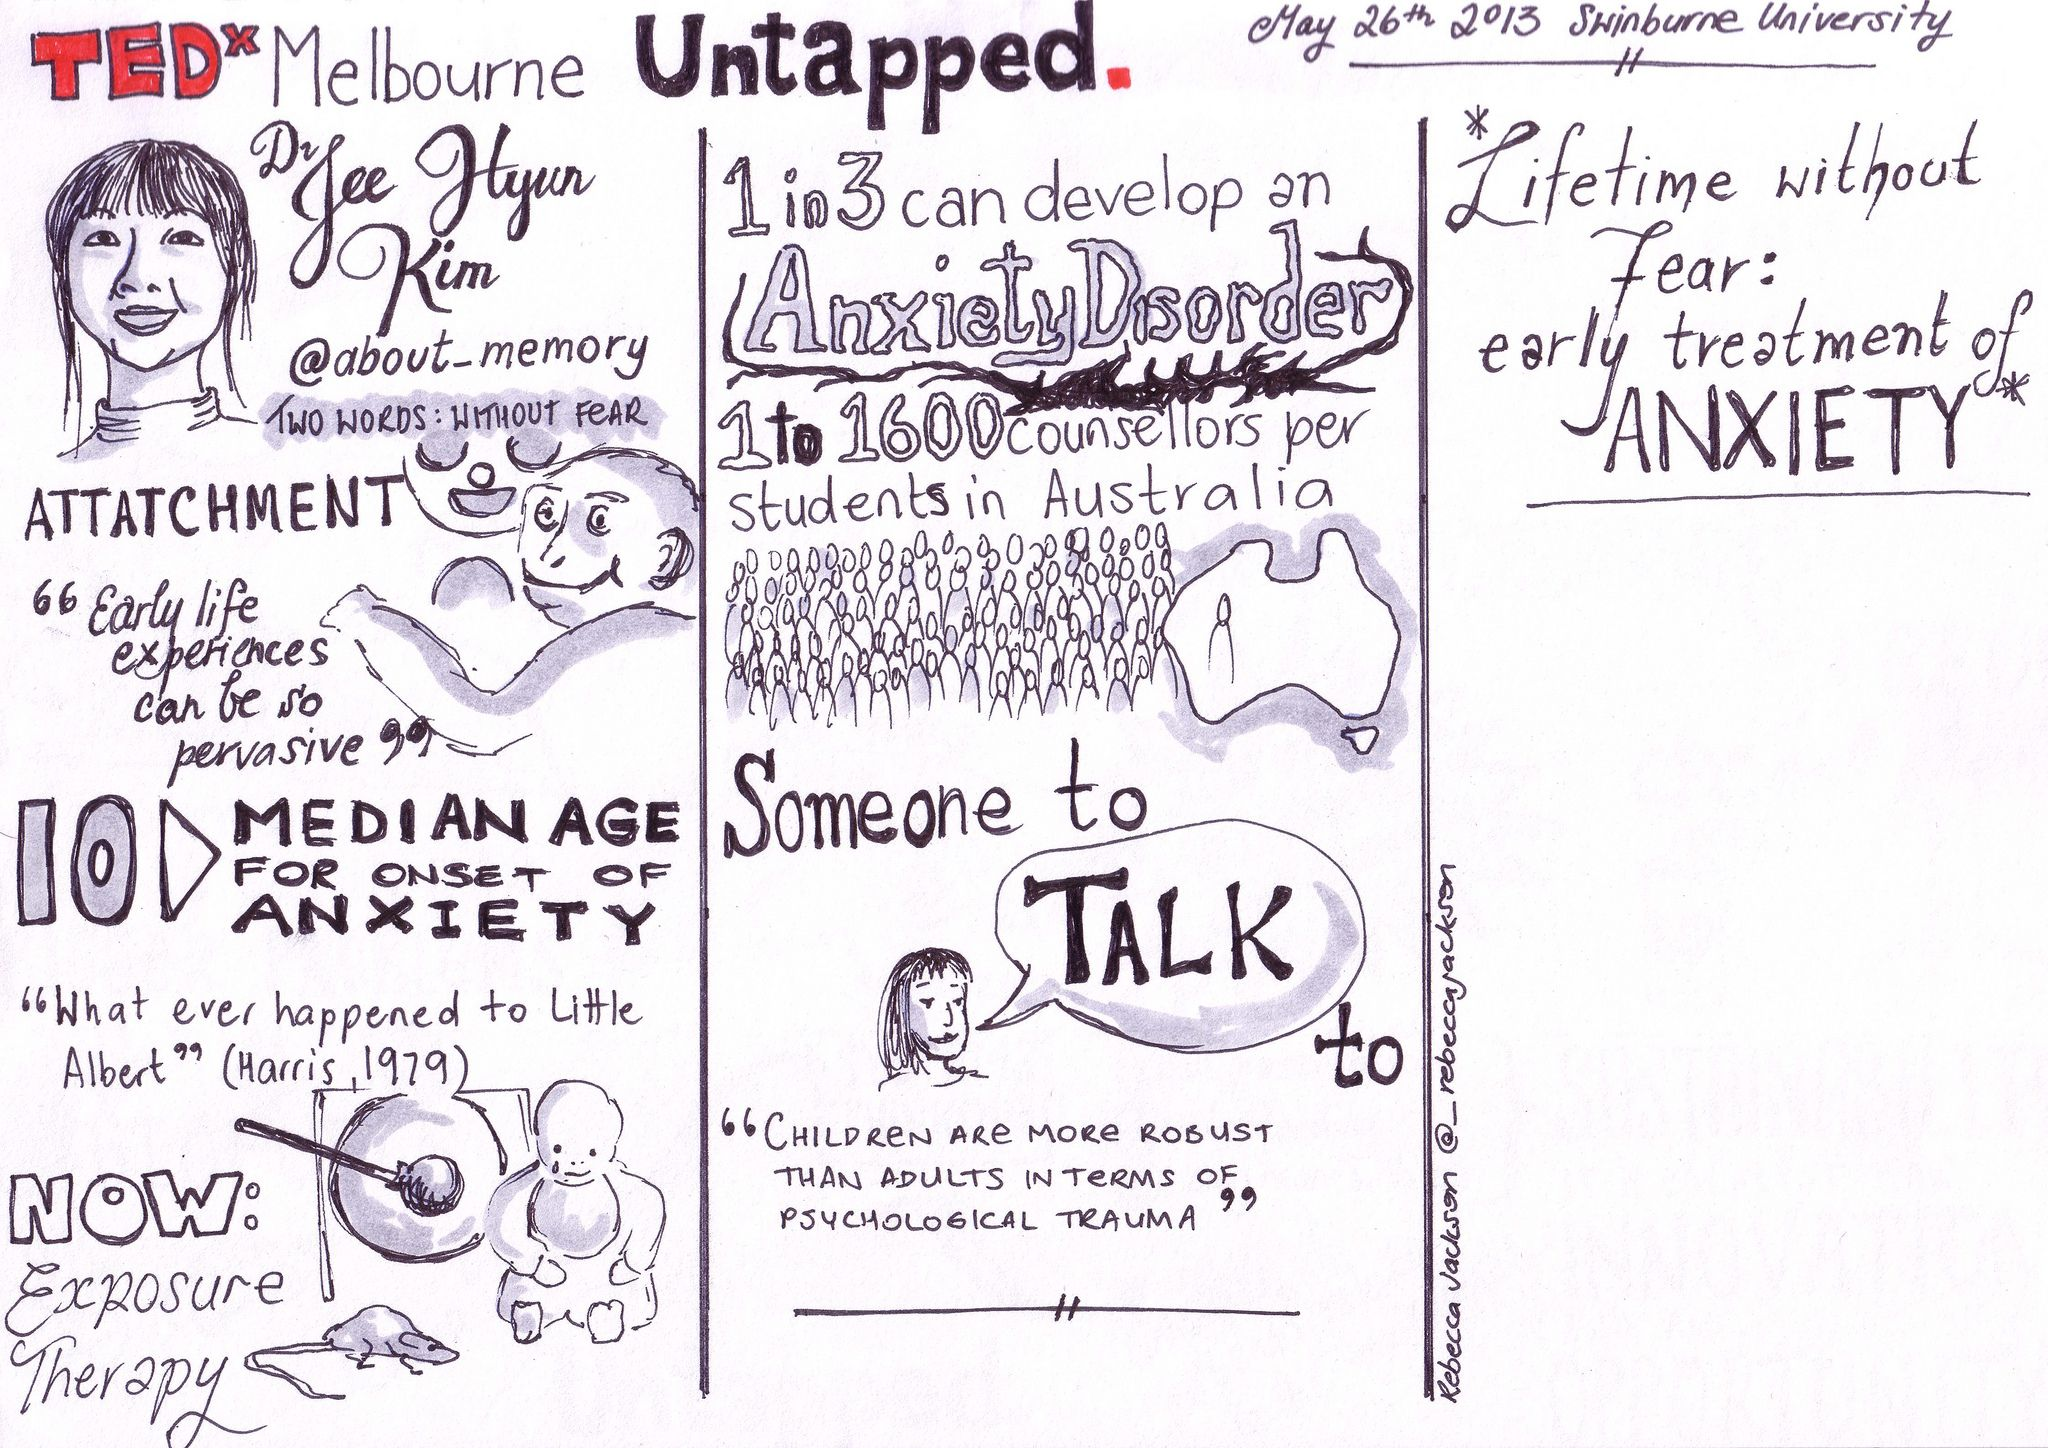 Sketchnotes From Dr Jee Hyun Kim S Tedxtalk Living Without Fear From Our May 26 Tedxmelbourne Untapped Event Watch Jee S Talk Here Http Hyun Kim Fear Ioi